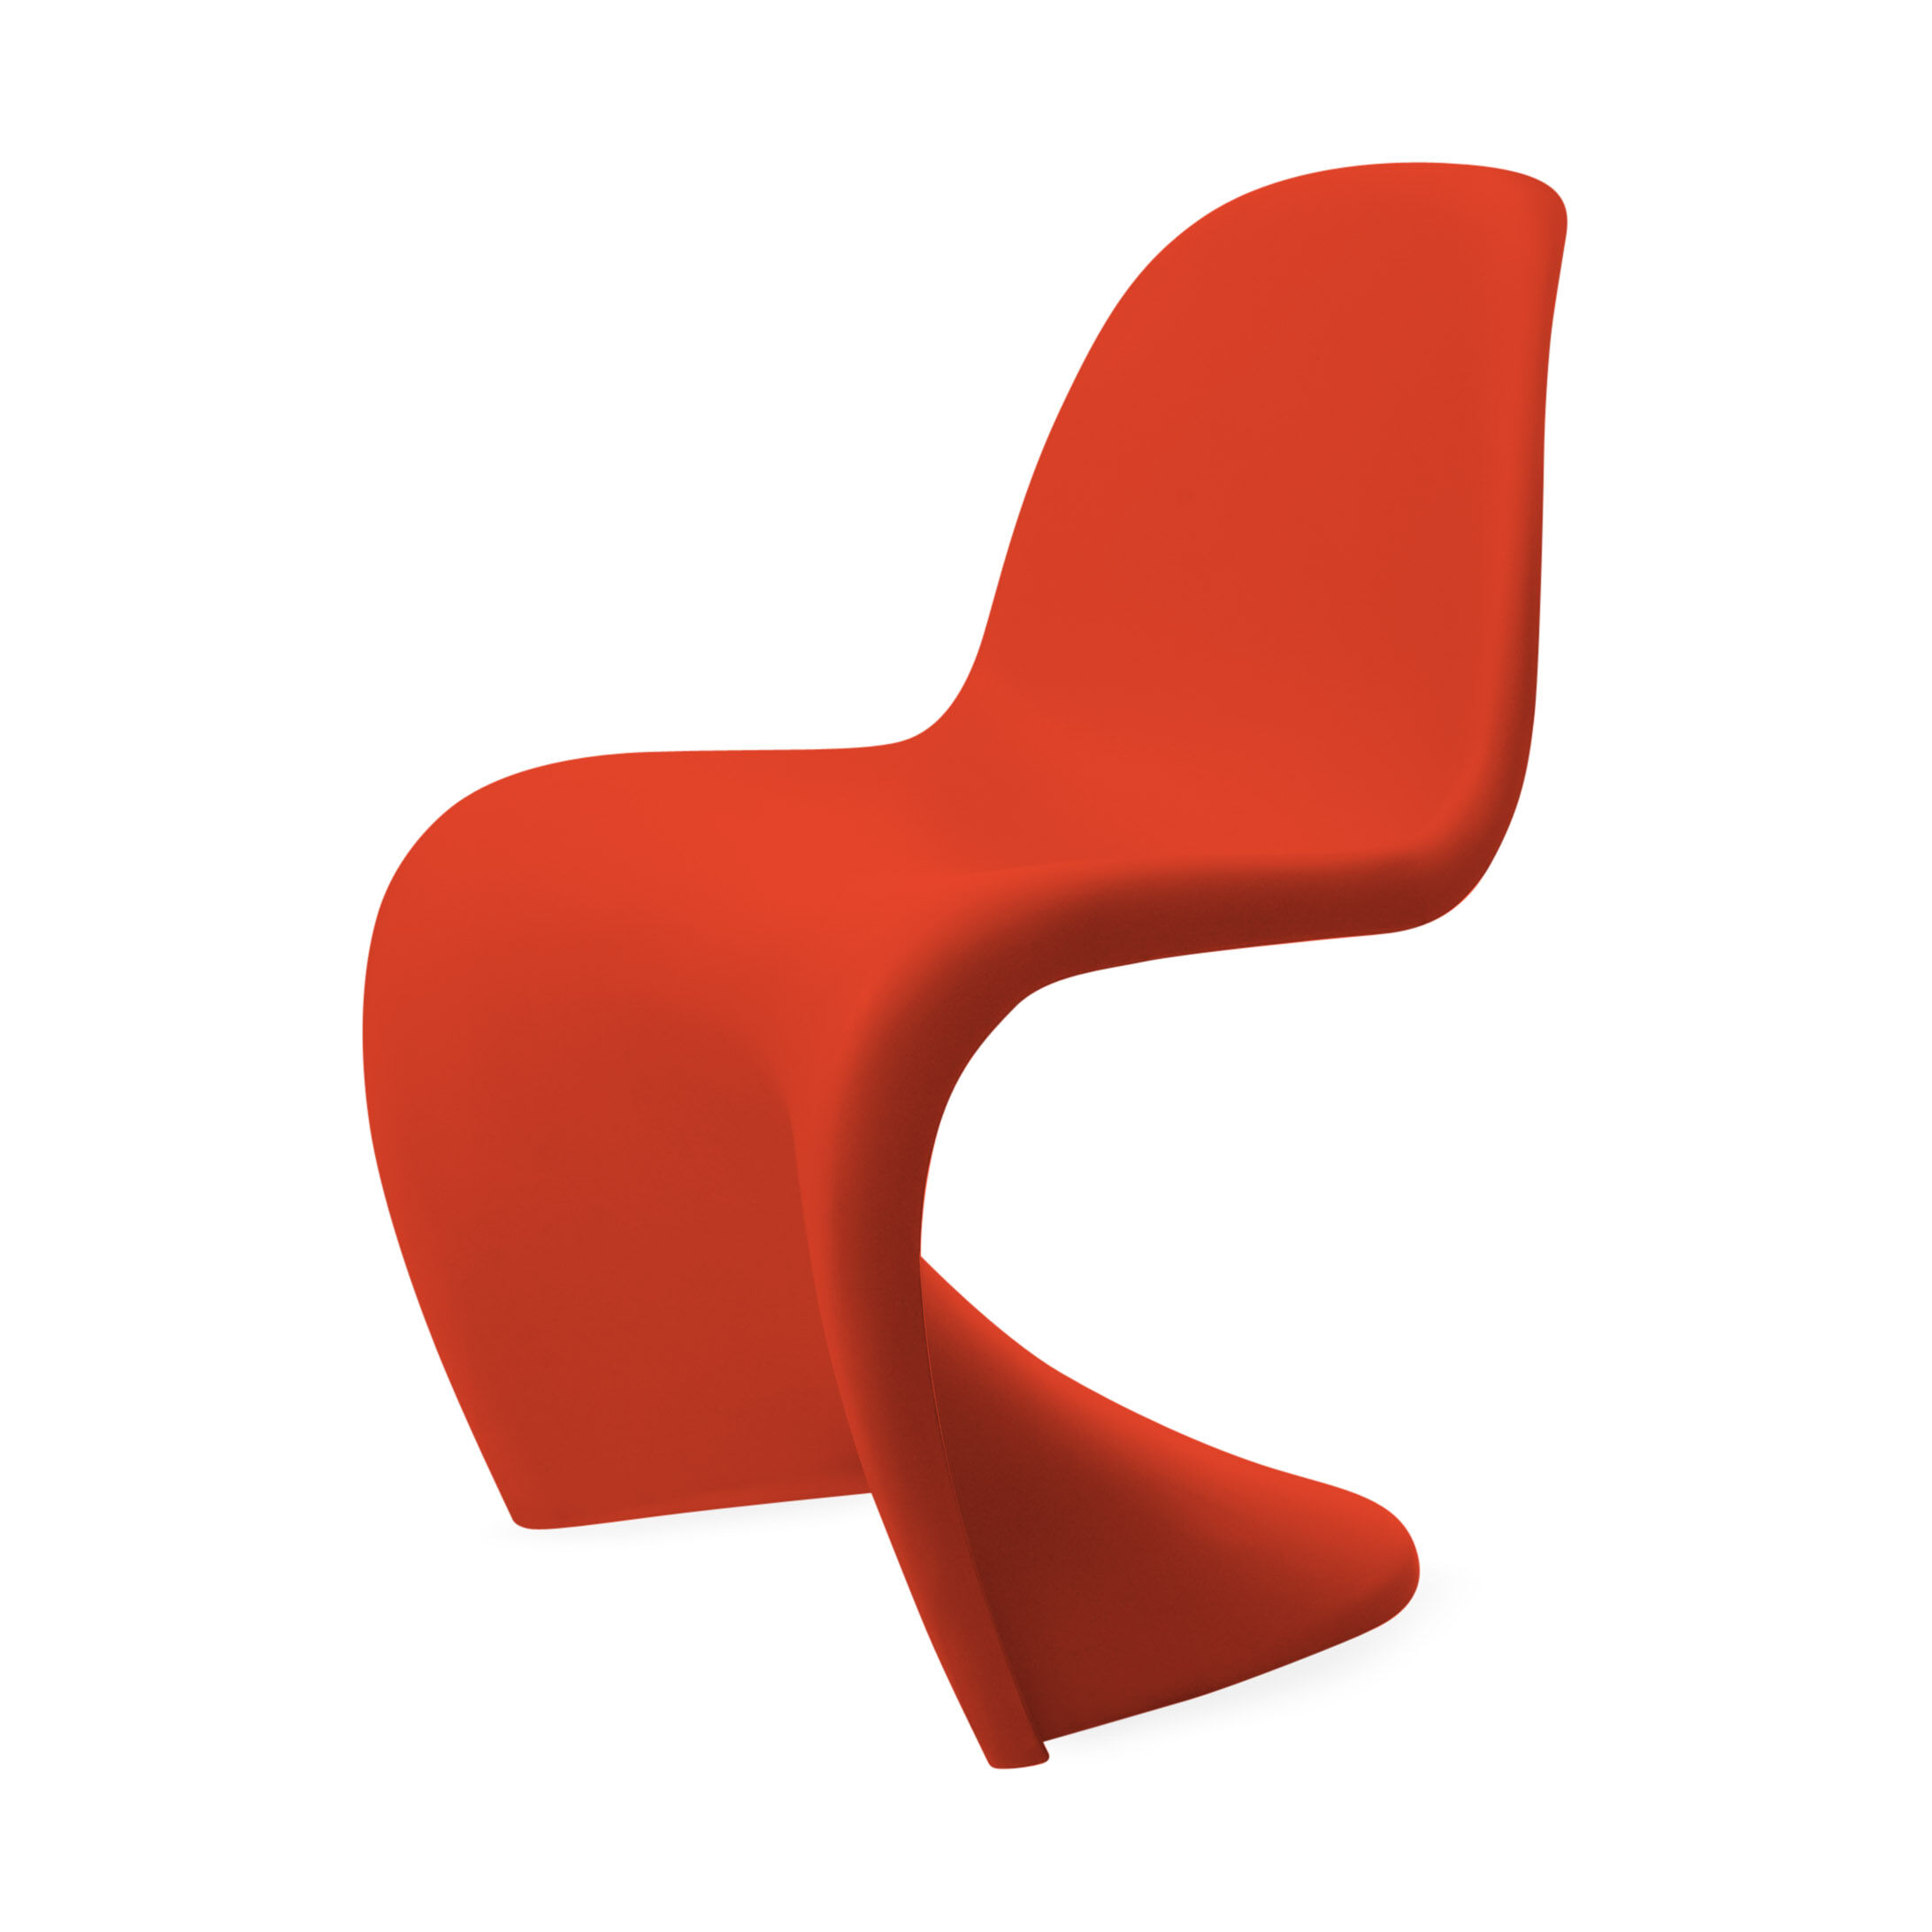 Panton Chairs Panton Chair Red Moma Design Store